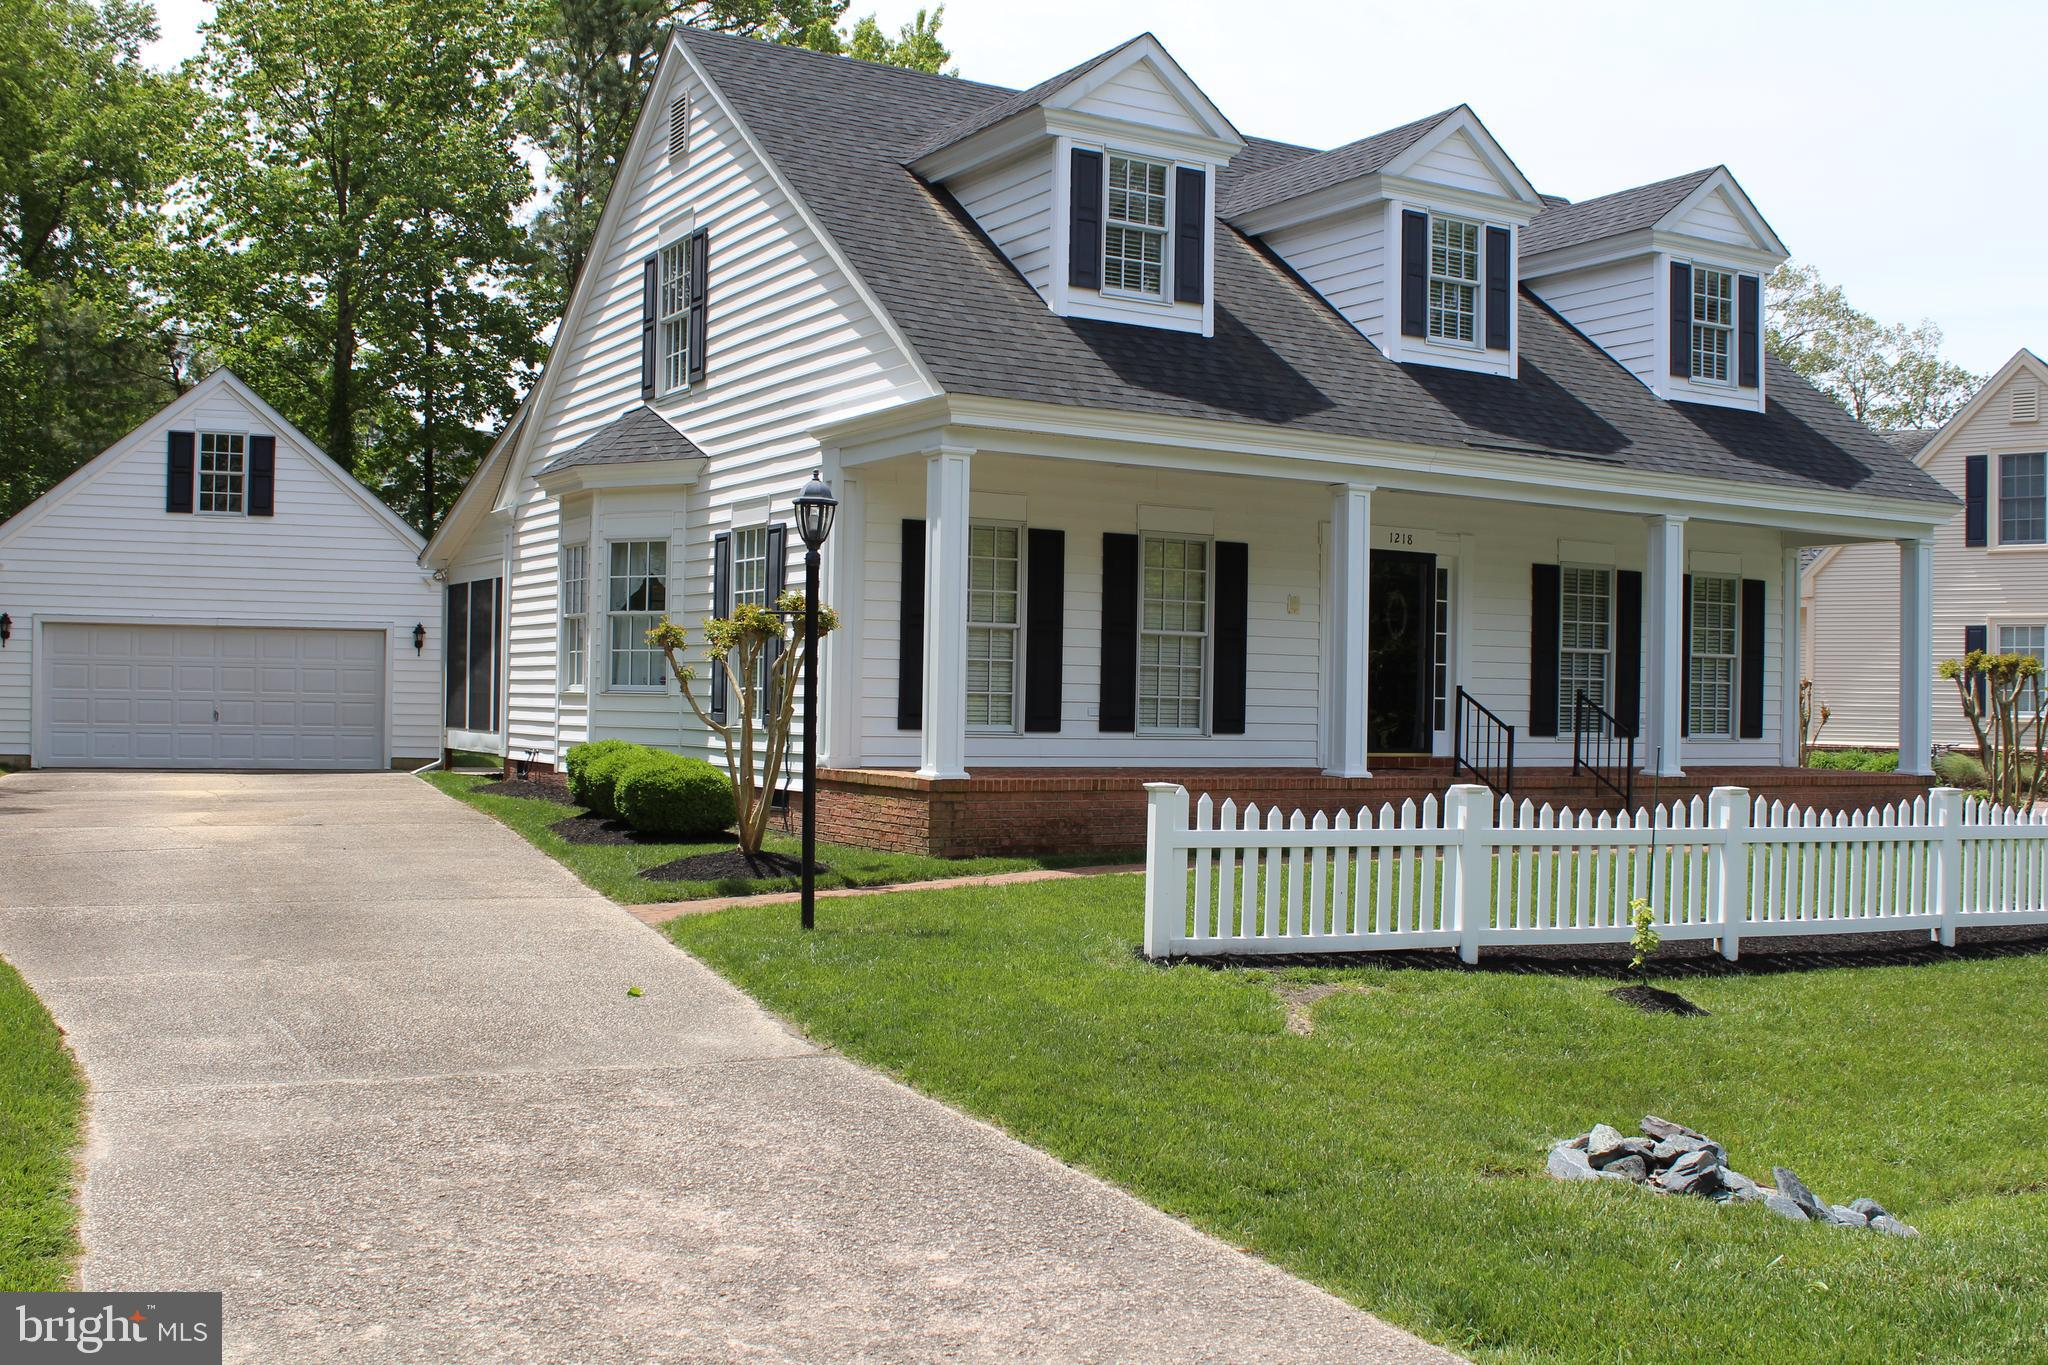 Colonial Village, an opportunity to own this 3 bedroom home in this unique Williamsburg community in